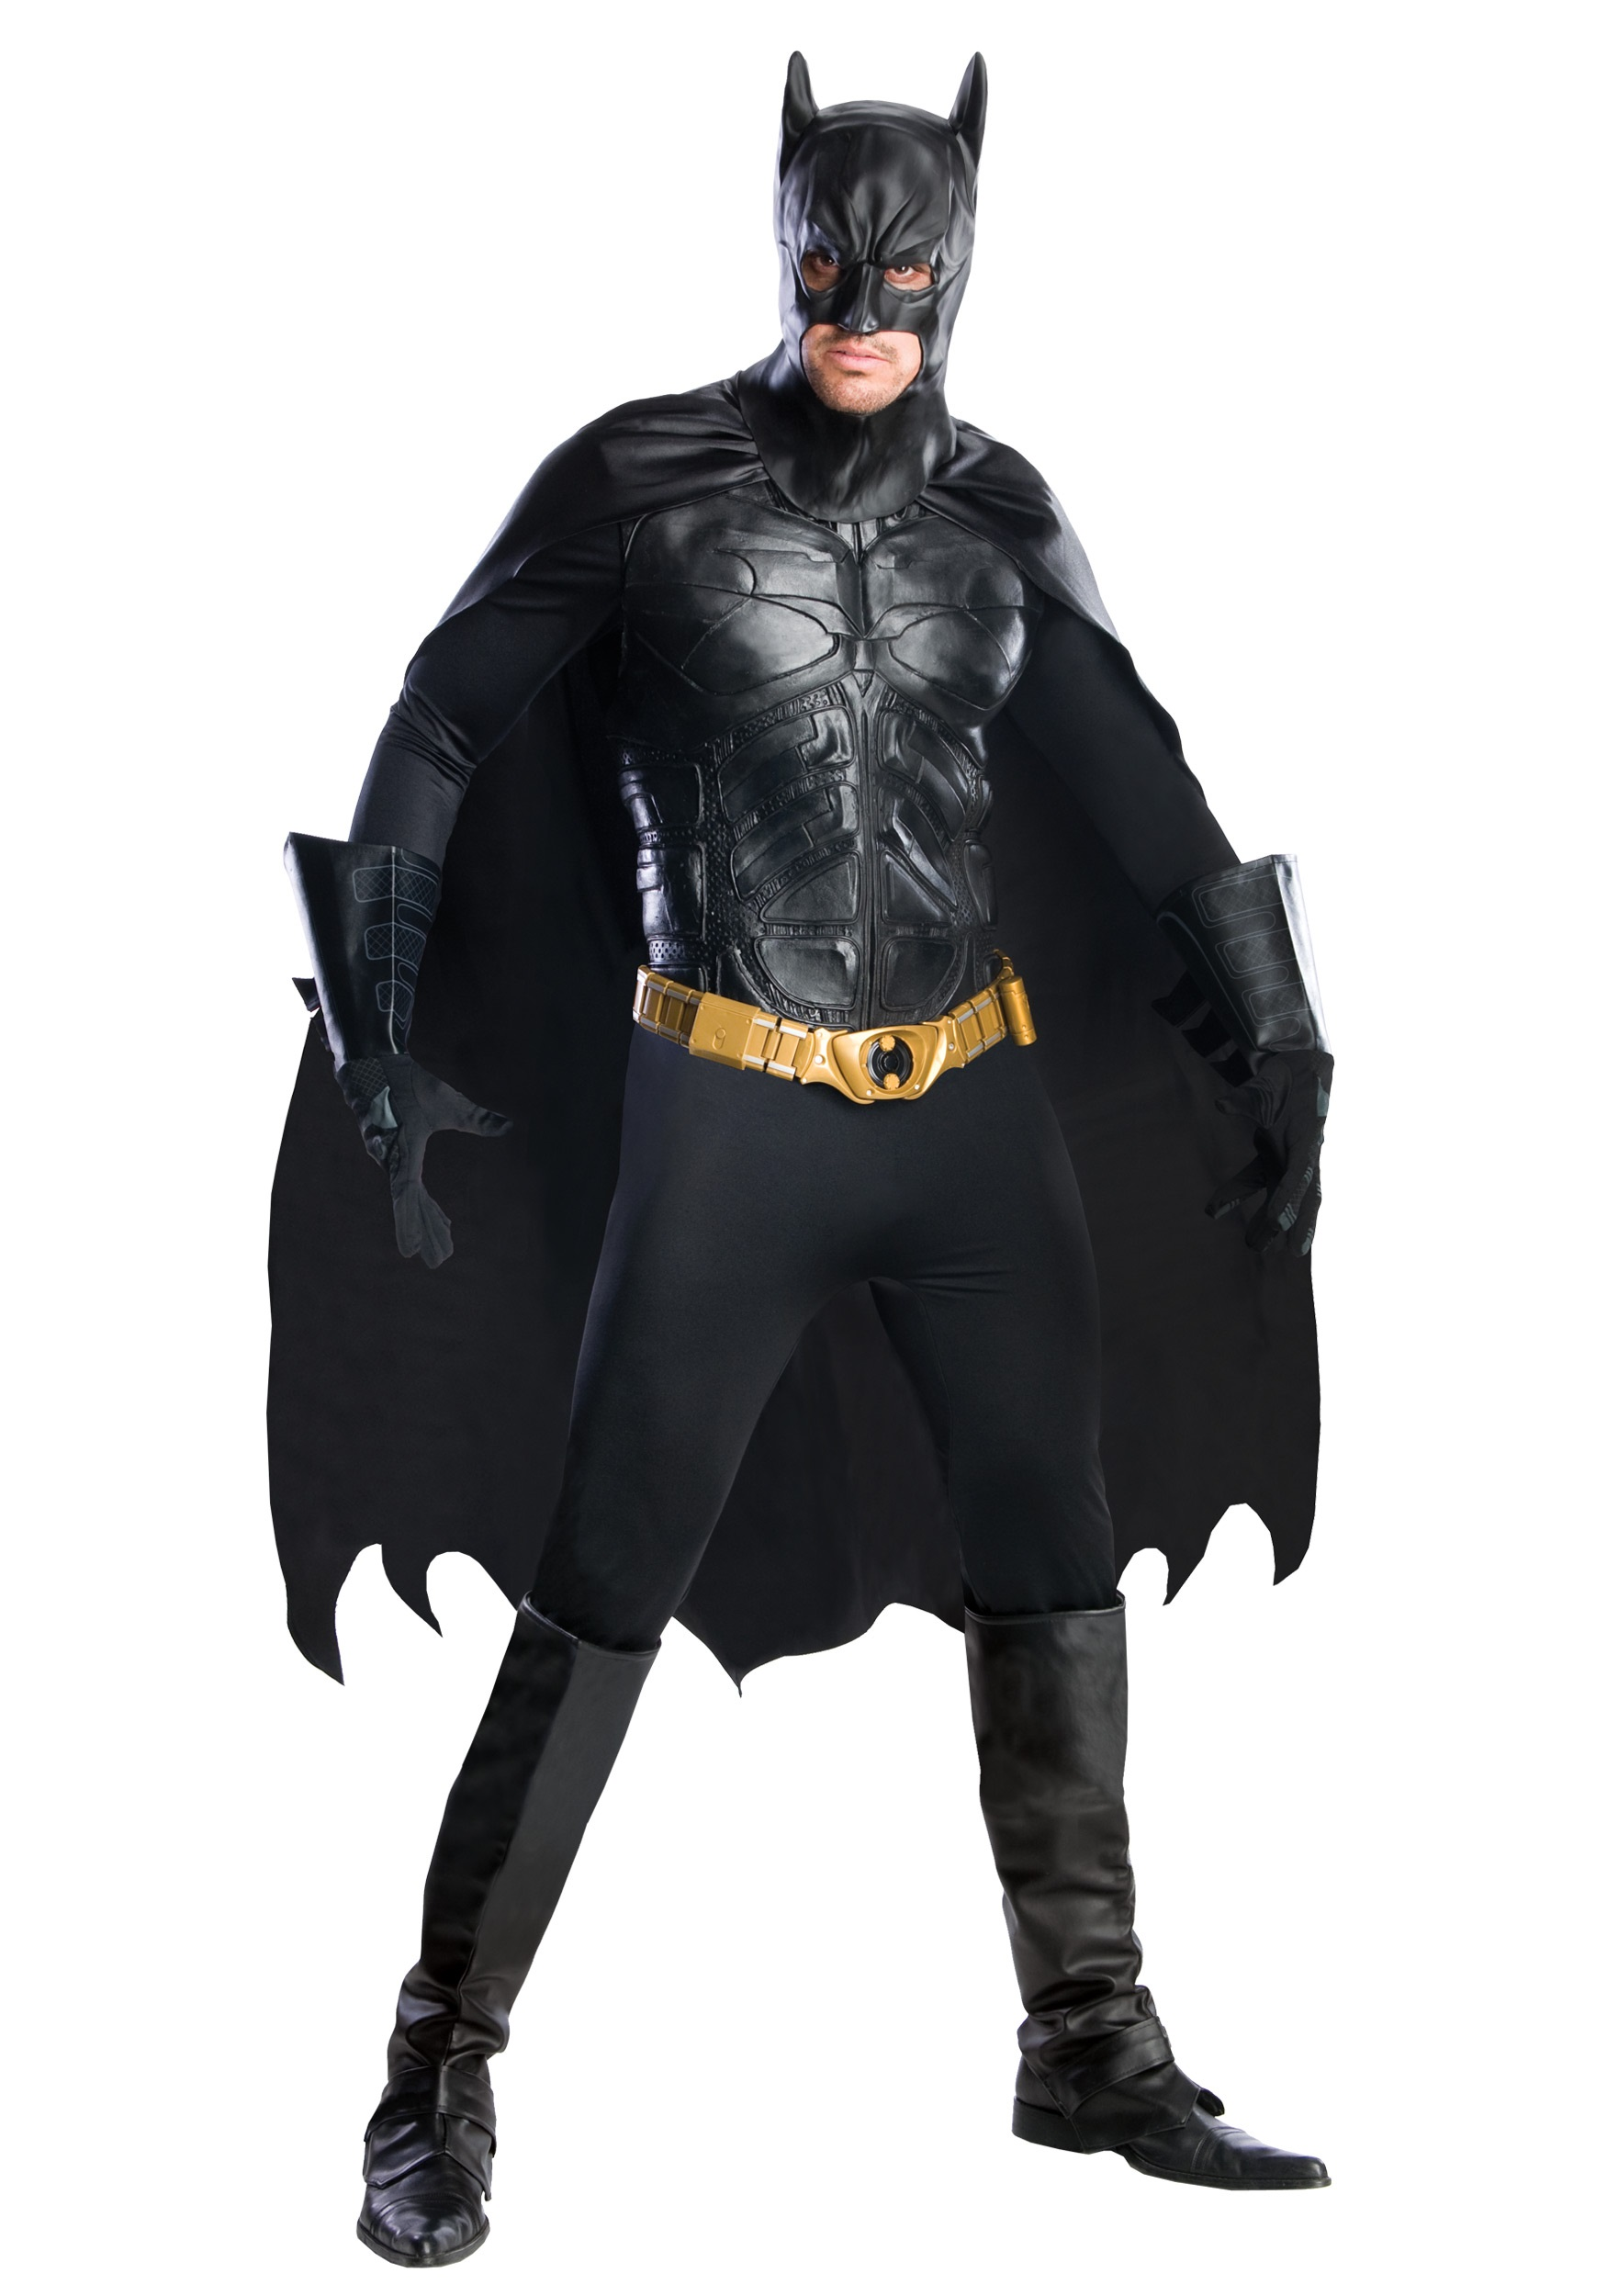 Grand Heritage Dark Knight Batman Costume  sc 1 st  Halloween Costumes & Grand Heritage Dark Knight Batman Costume - Dark Knight Rises Costumes